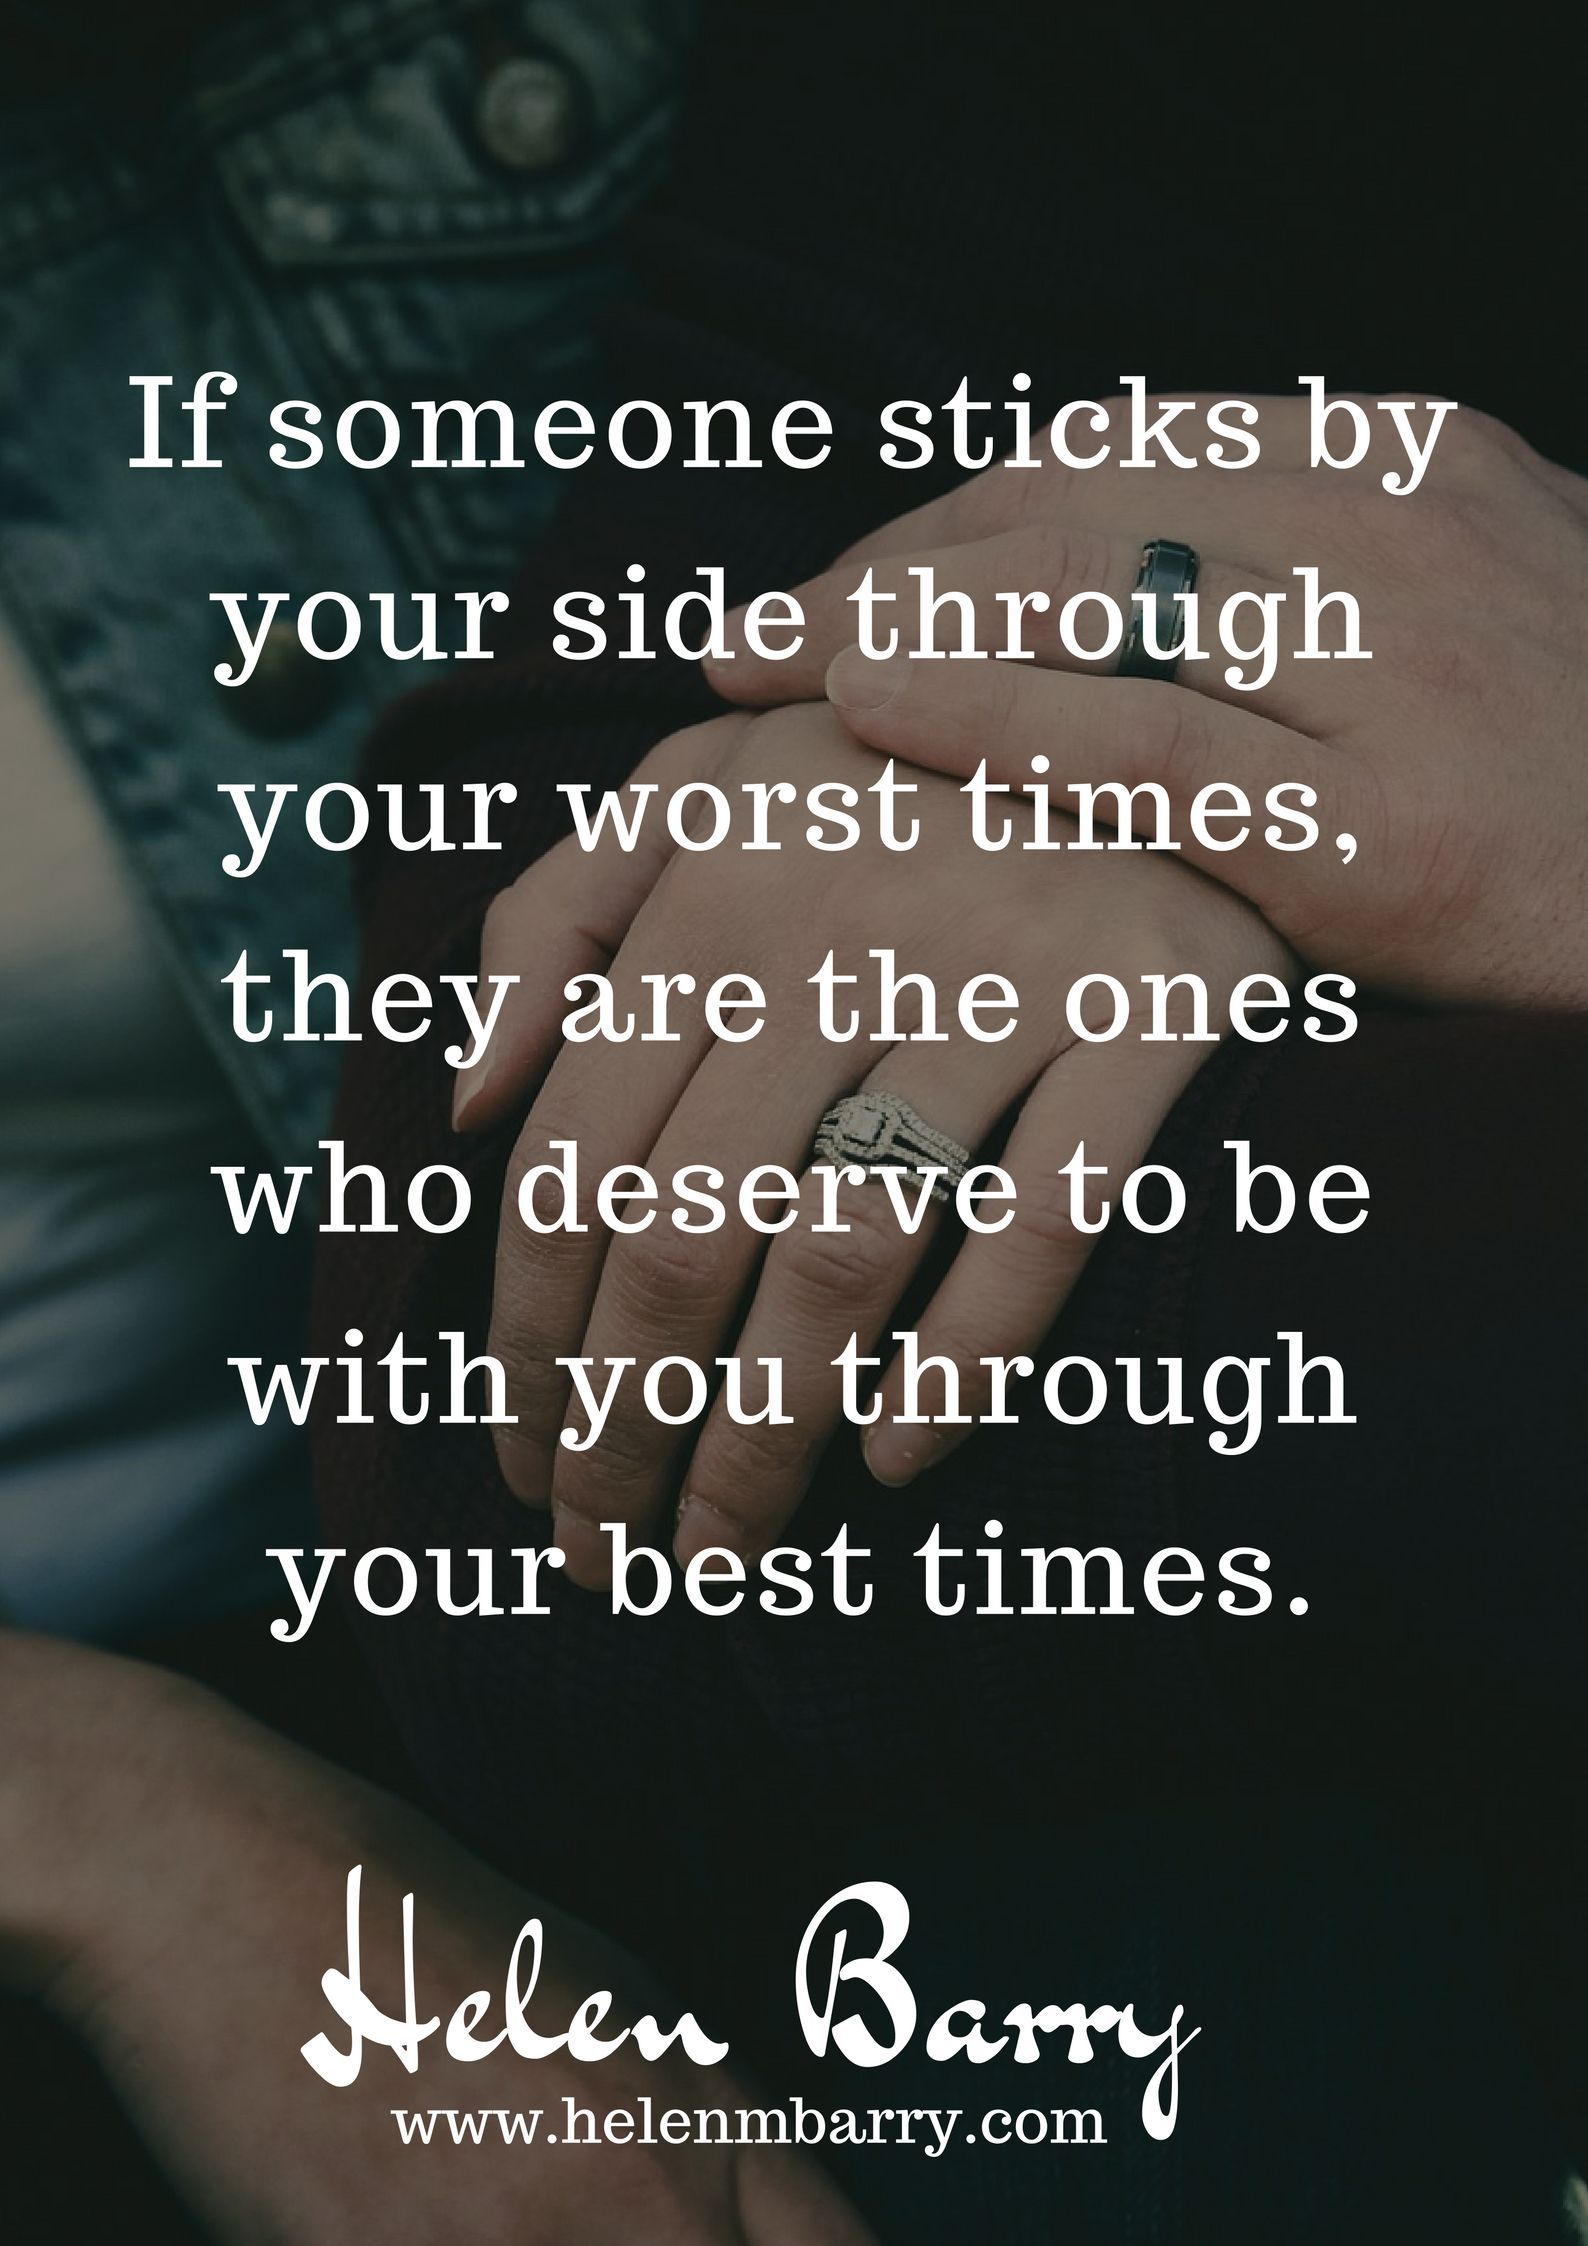 Nobody Sticks So No One Deserves To Be With Mebut Actually There